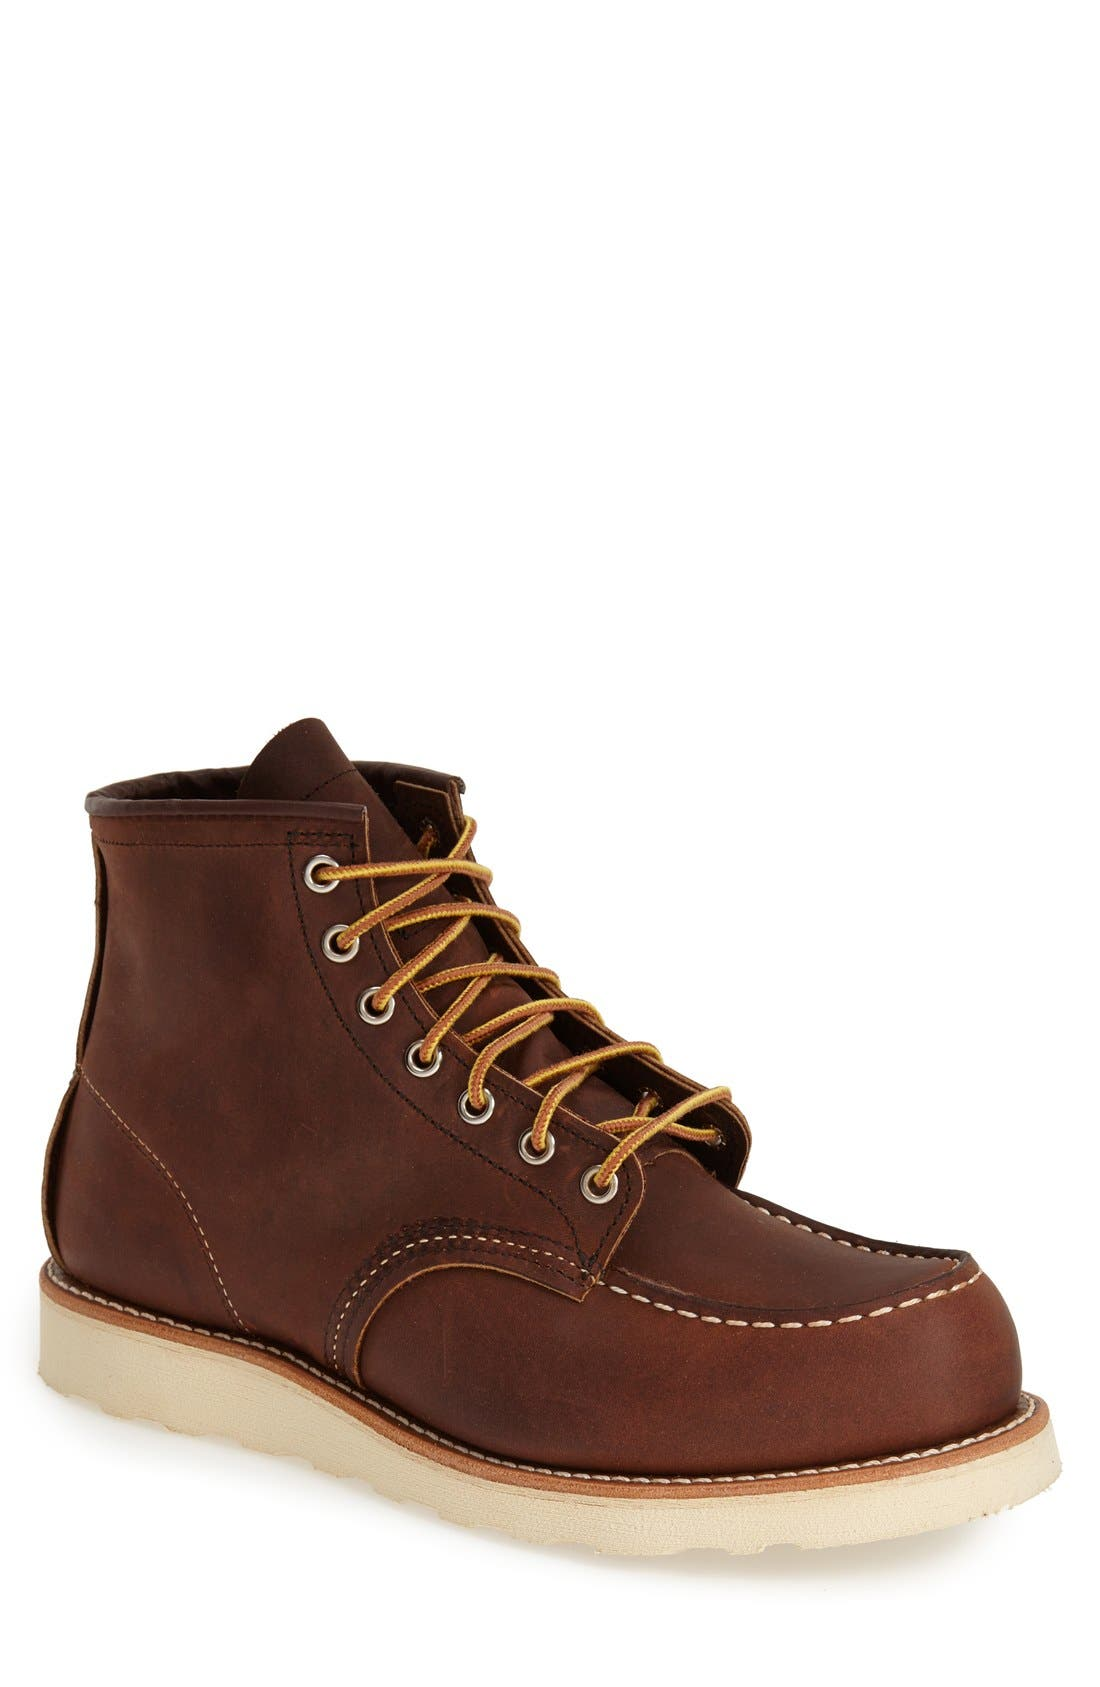 RED WING,                             6 Inch Moc Toe Boot,                             Main thumbnail 1, color,                             BOURBON YUMA LEATHER